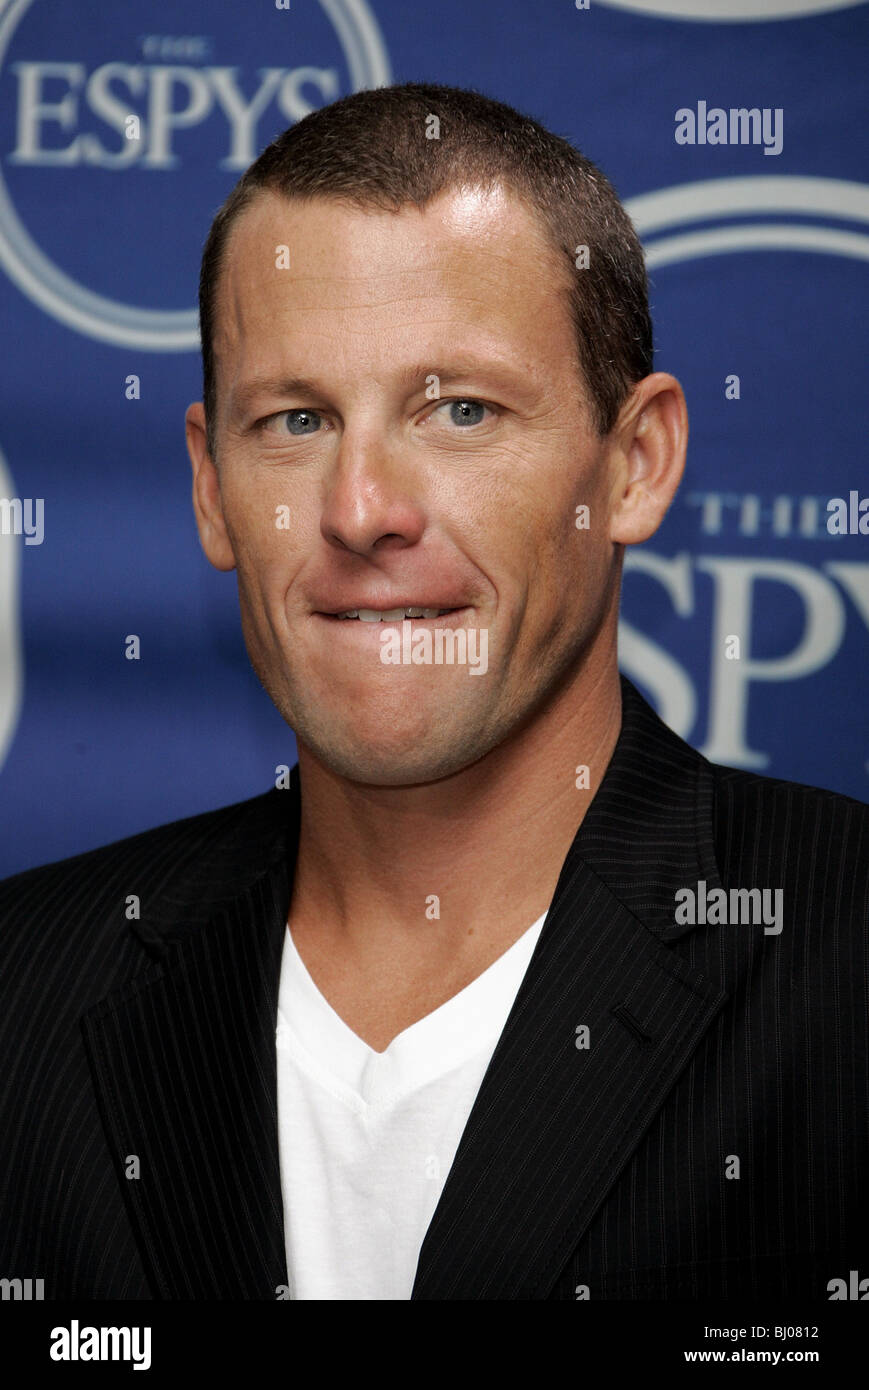 Lance Armstrong Stock Photos & Lance Armstrong Stock ...